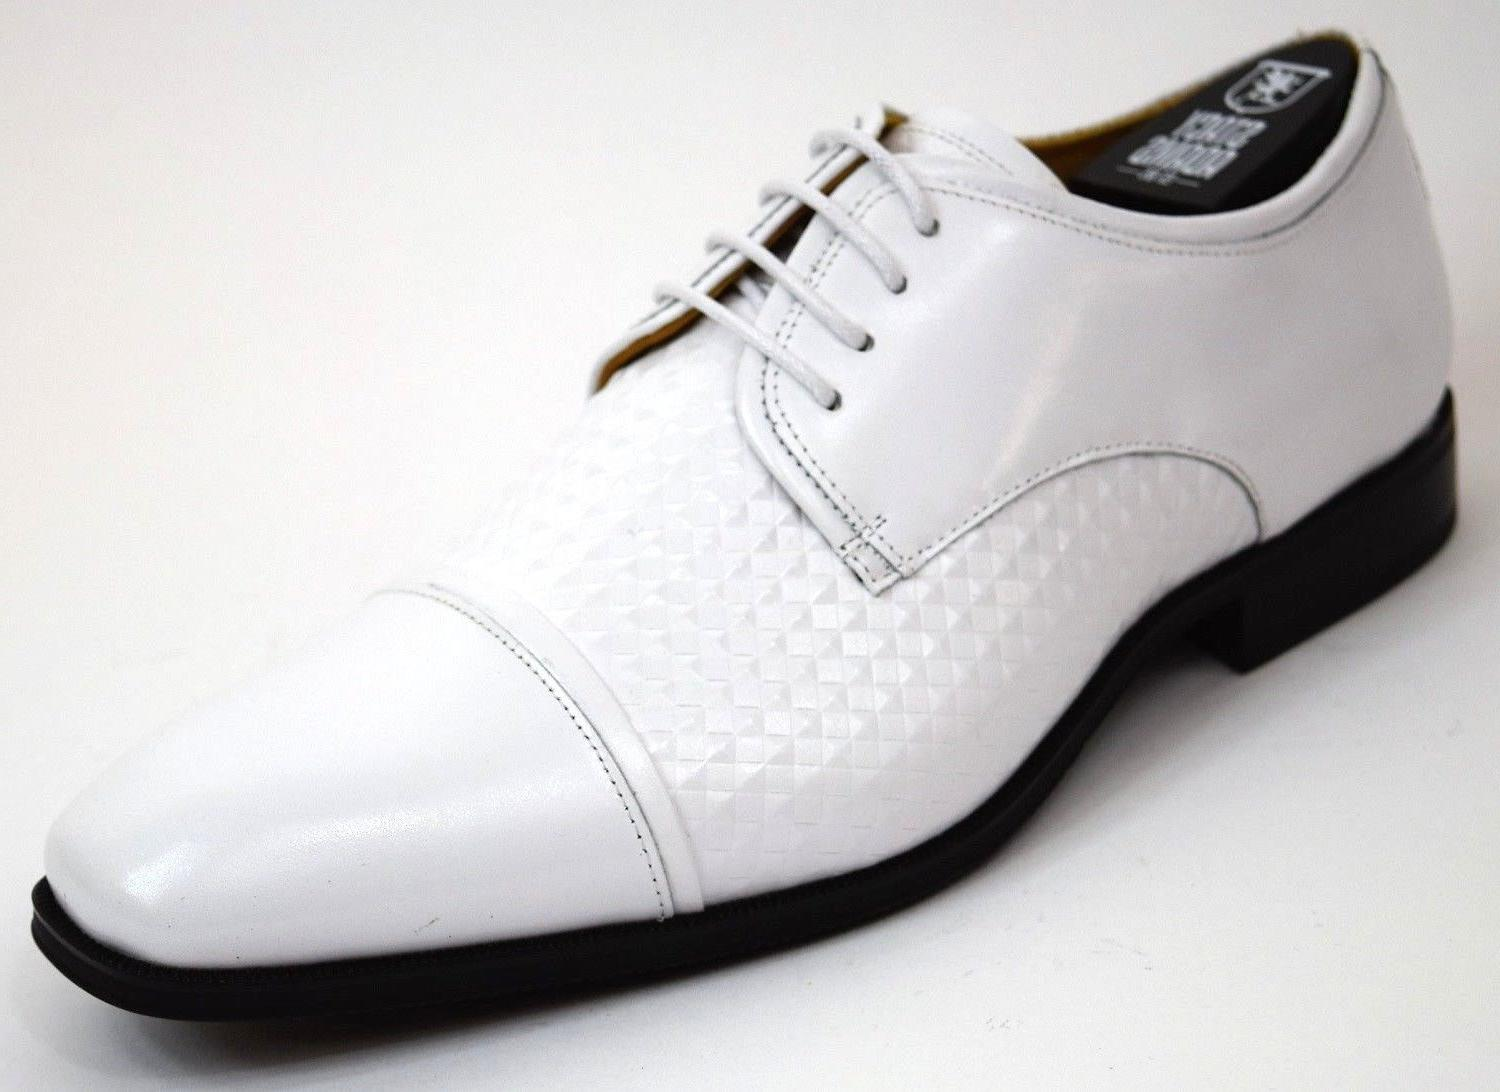 Men's Stacy Adams Dress Shoes Cap Toe Oxford Solid White Lea